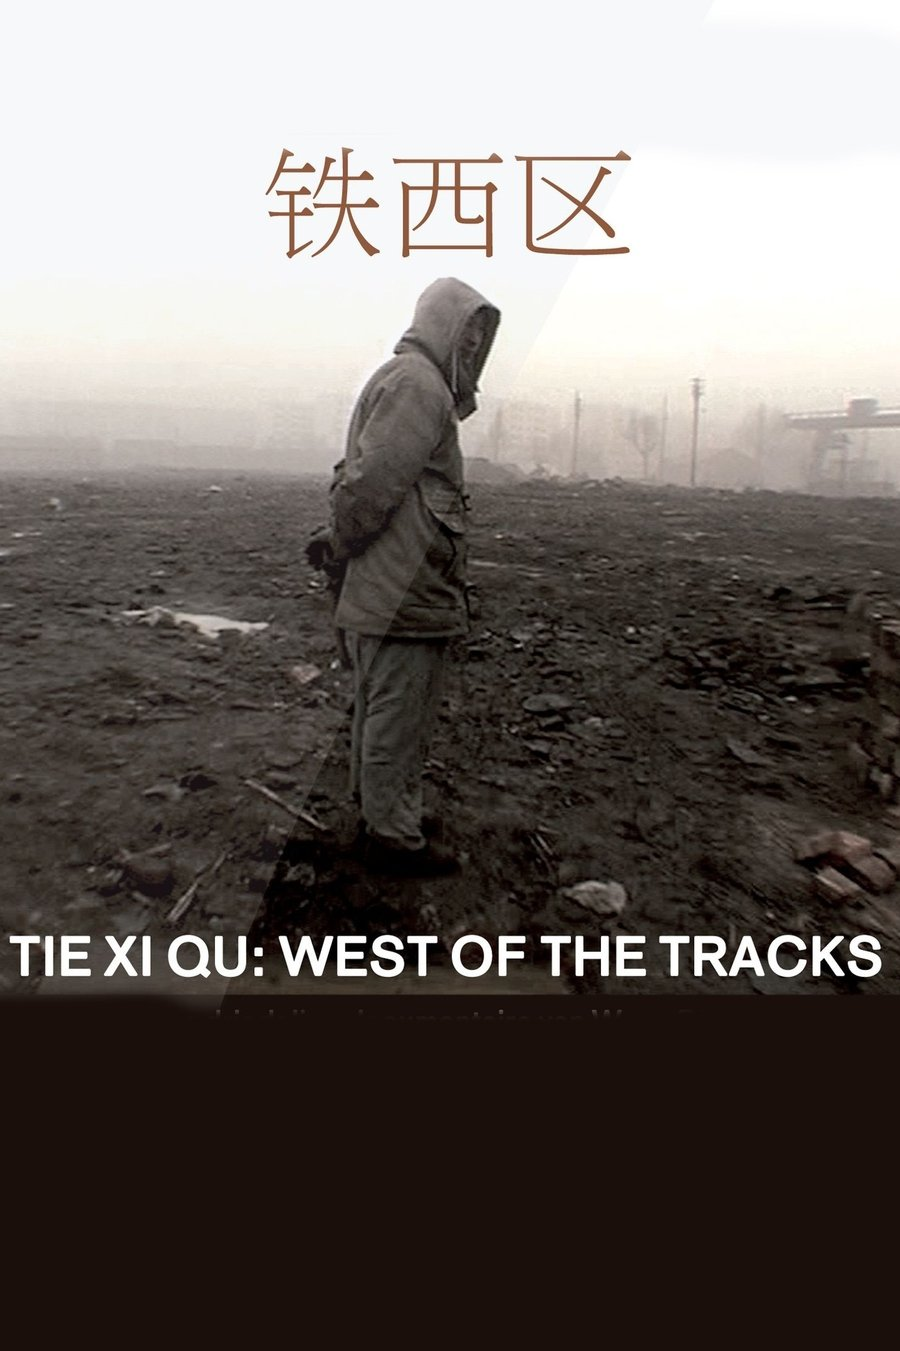 West of the Tracks. Parte III: Rails